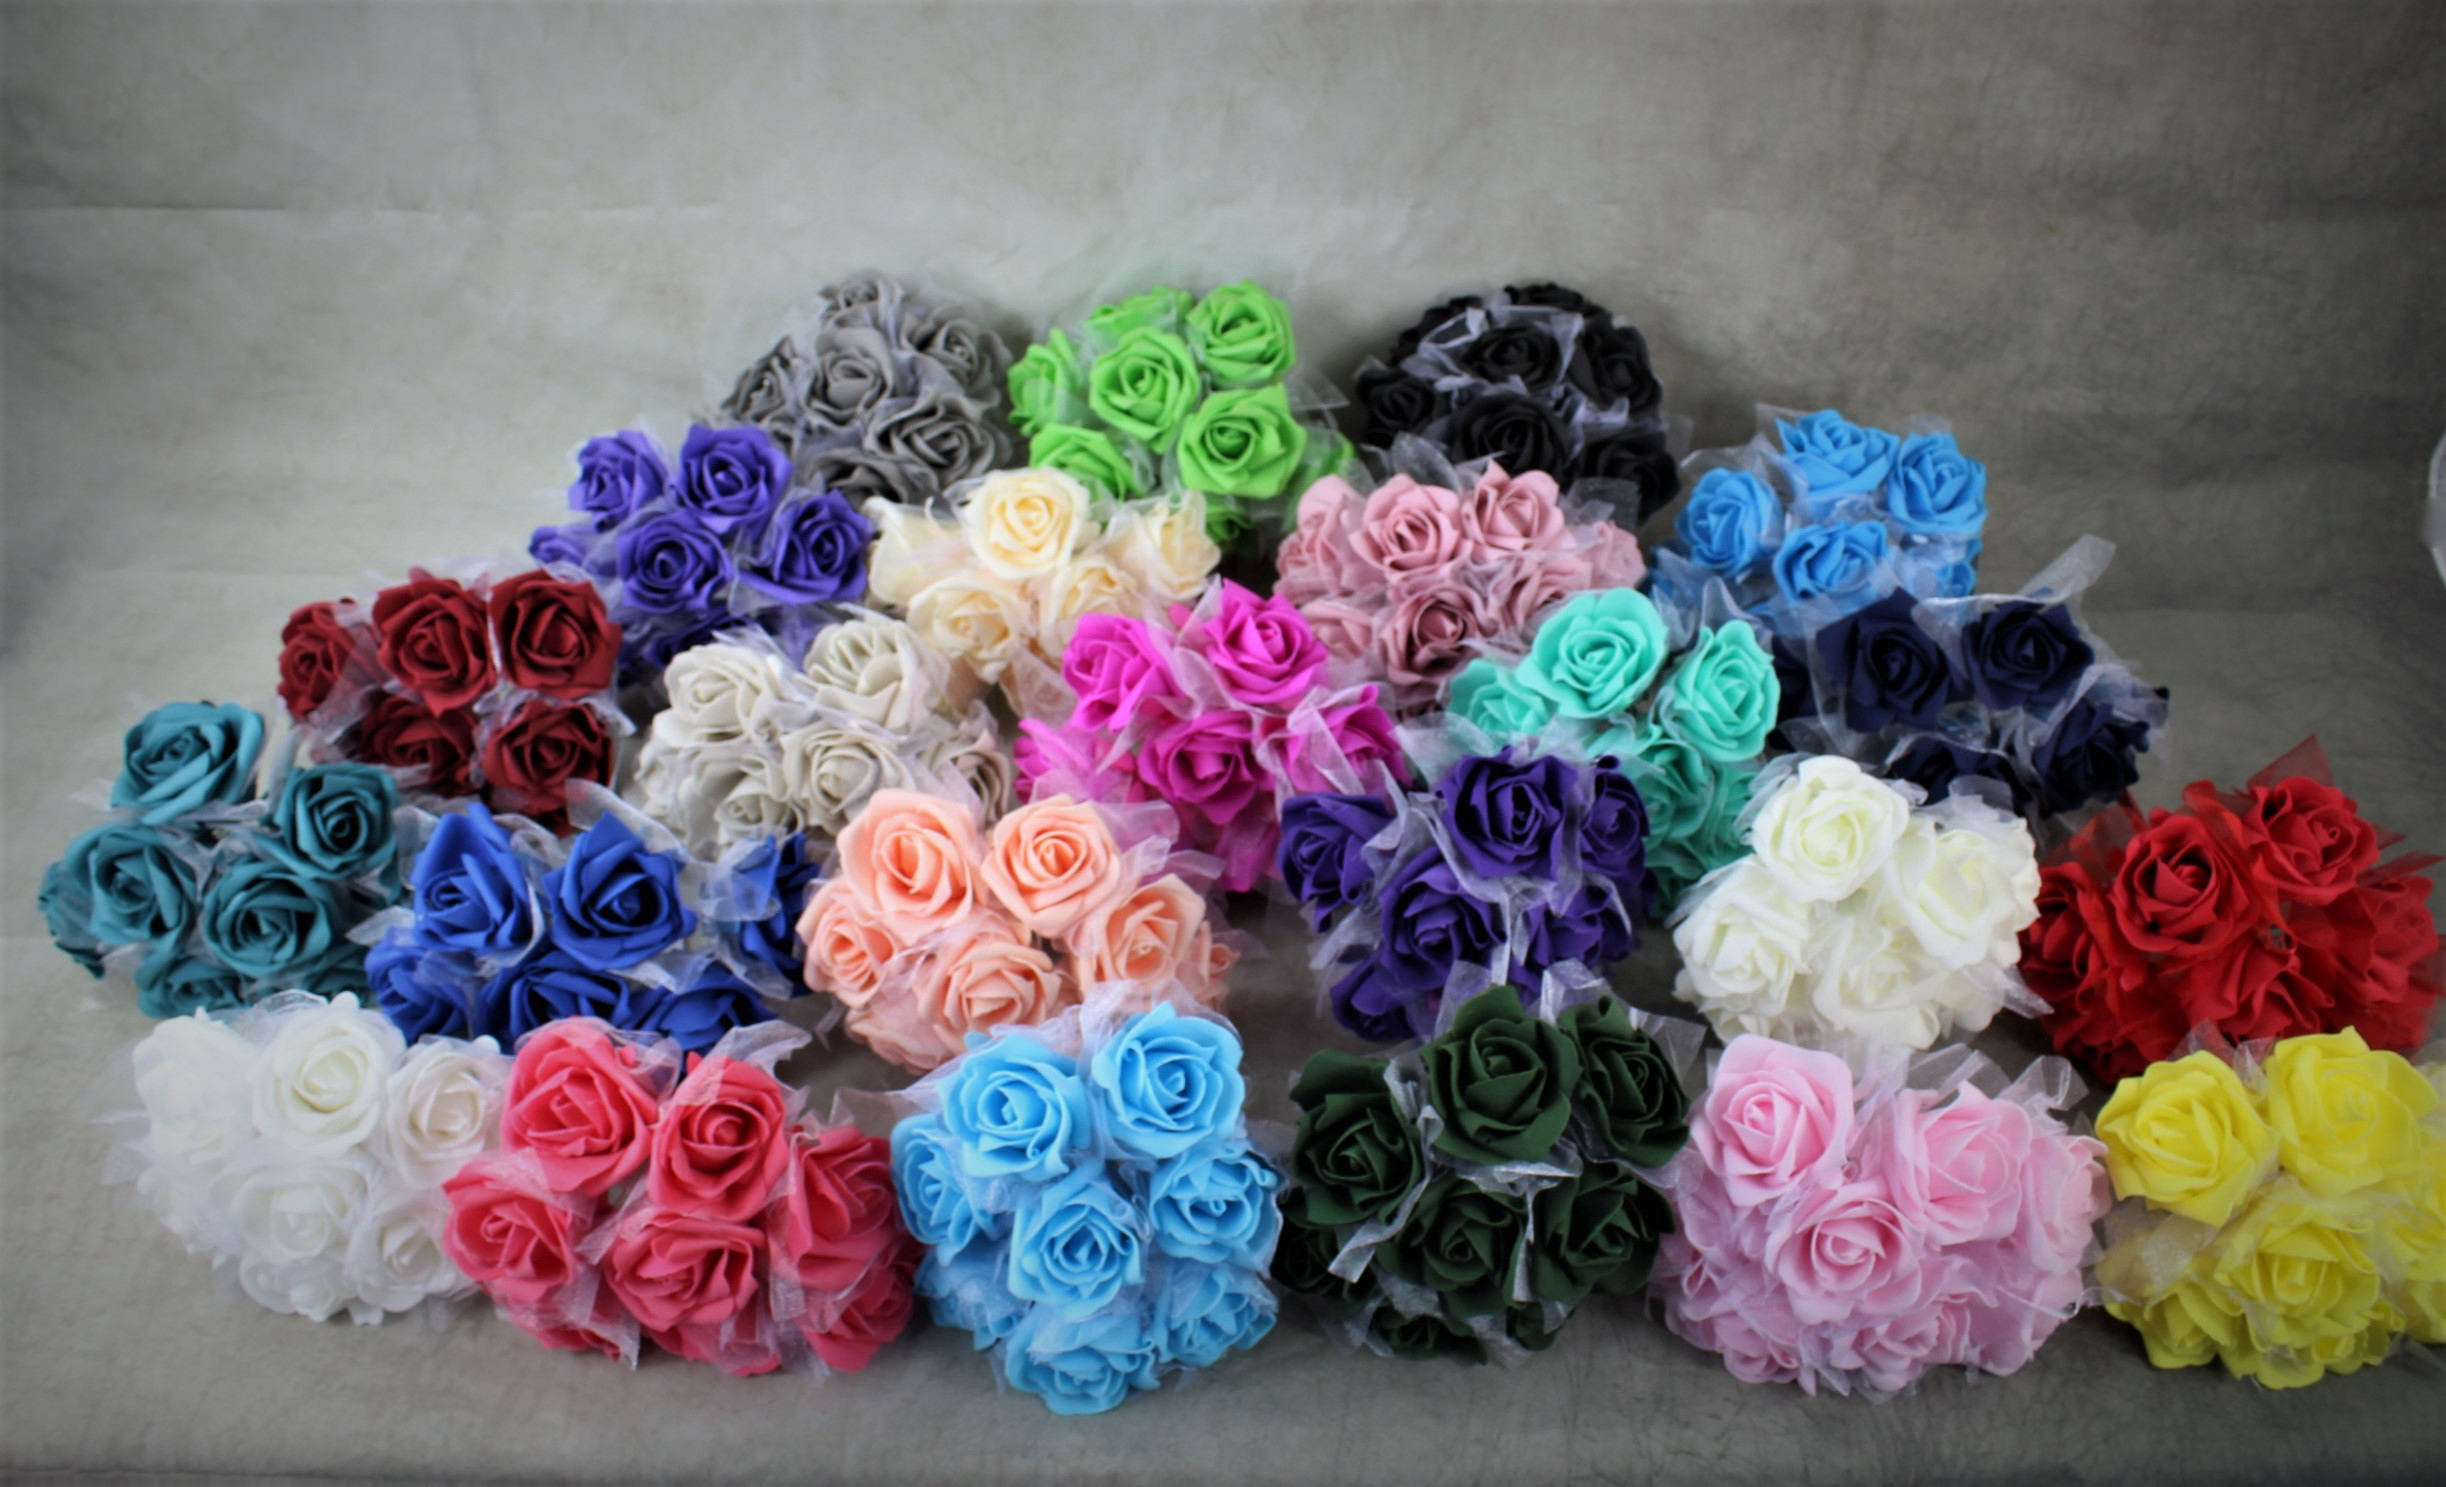 12 x Large Colourfast Foam Roses with Tulle Wrap